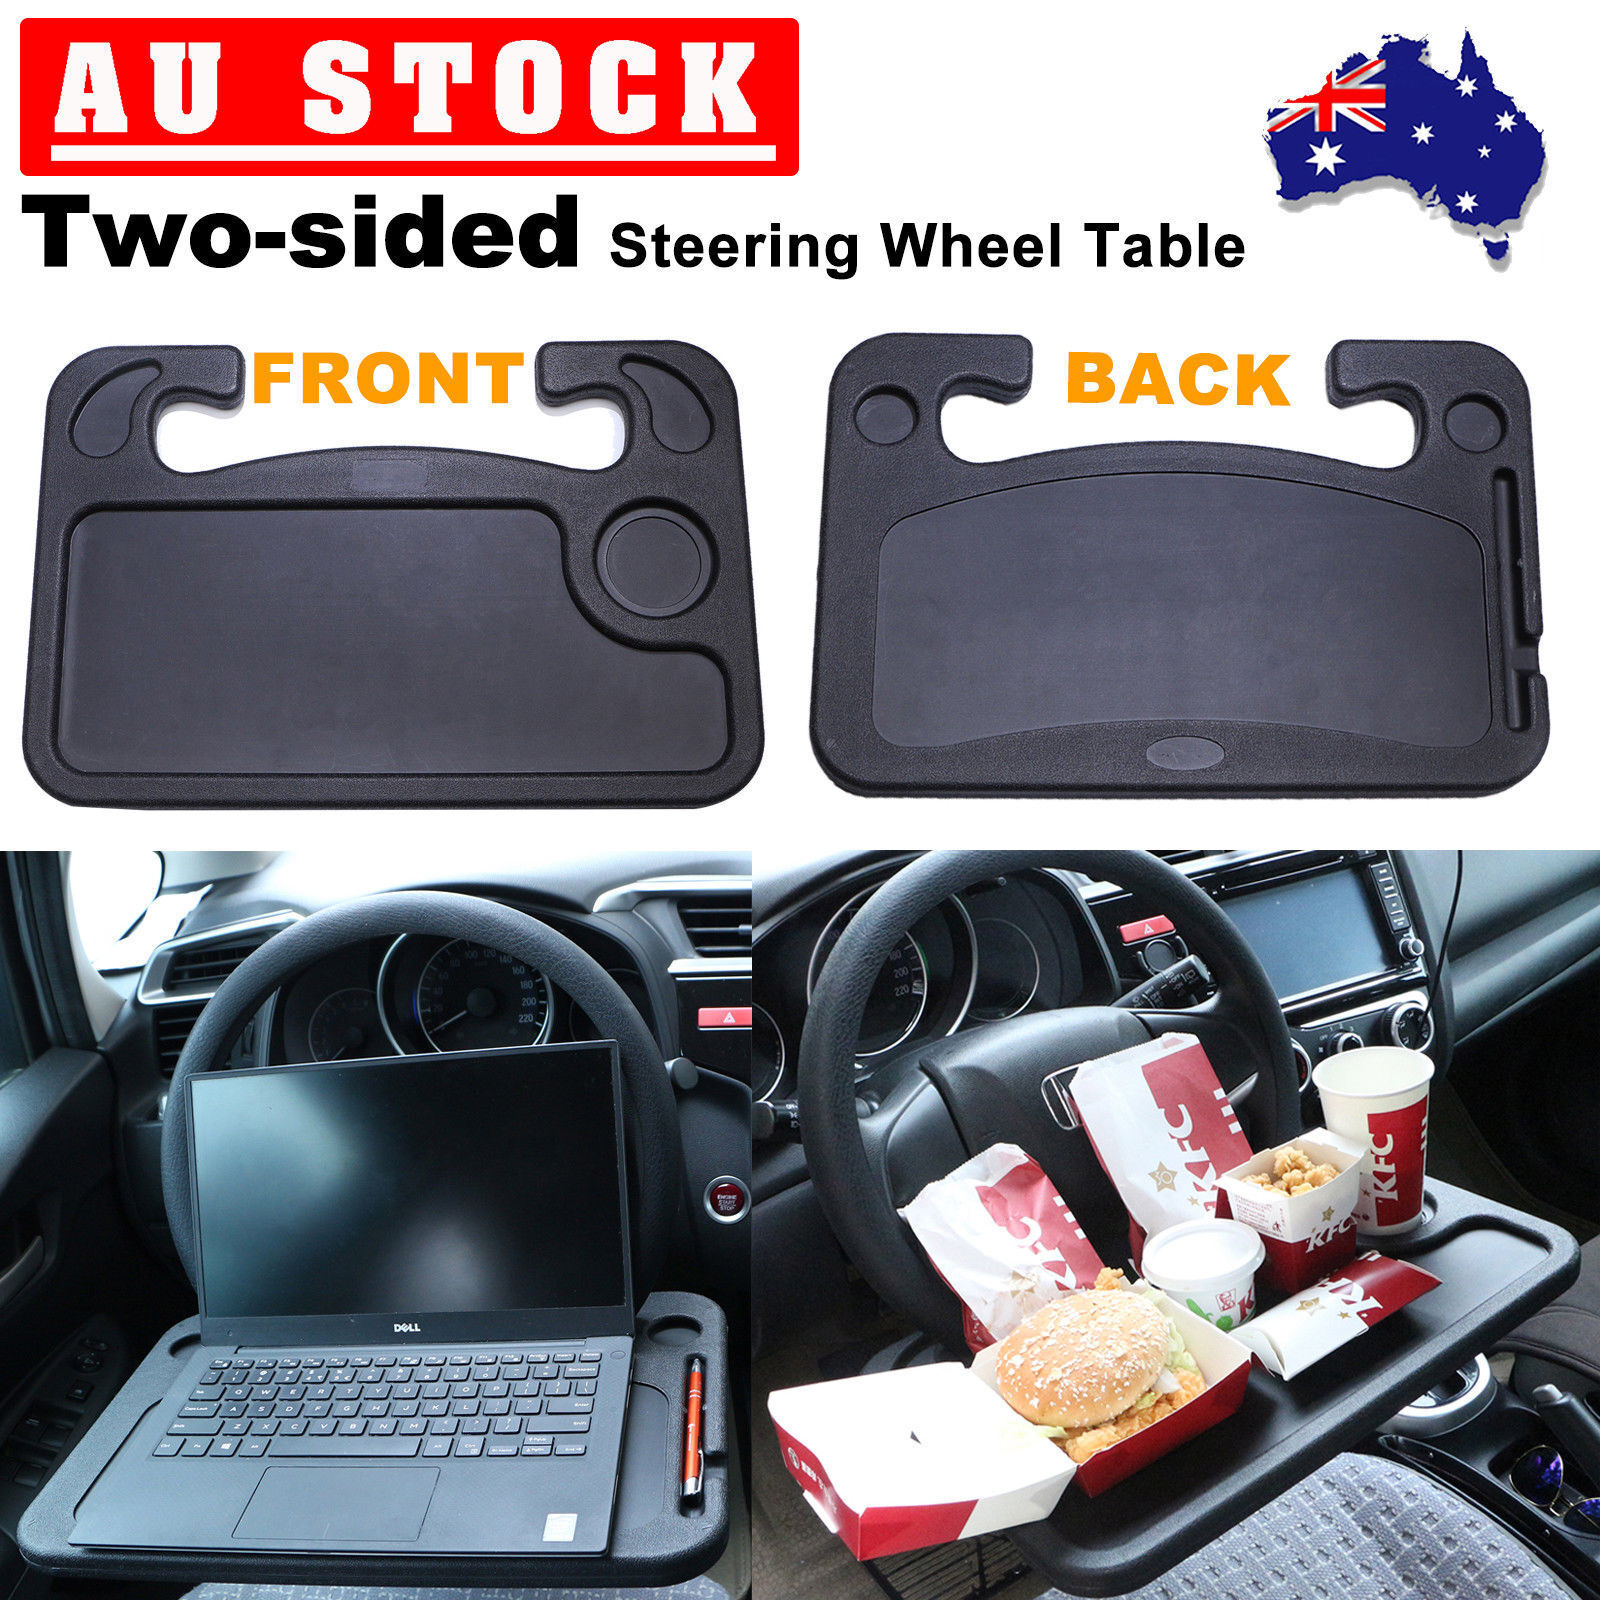 ABS Car Steering Wheel Tray Table Laptop Stand Work Desk Drink Holder Clip